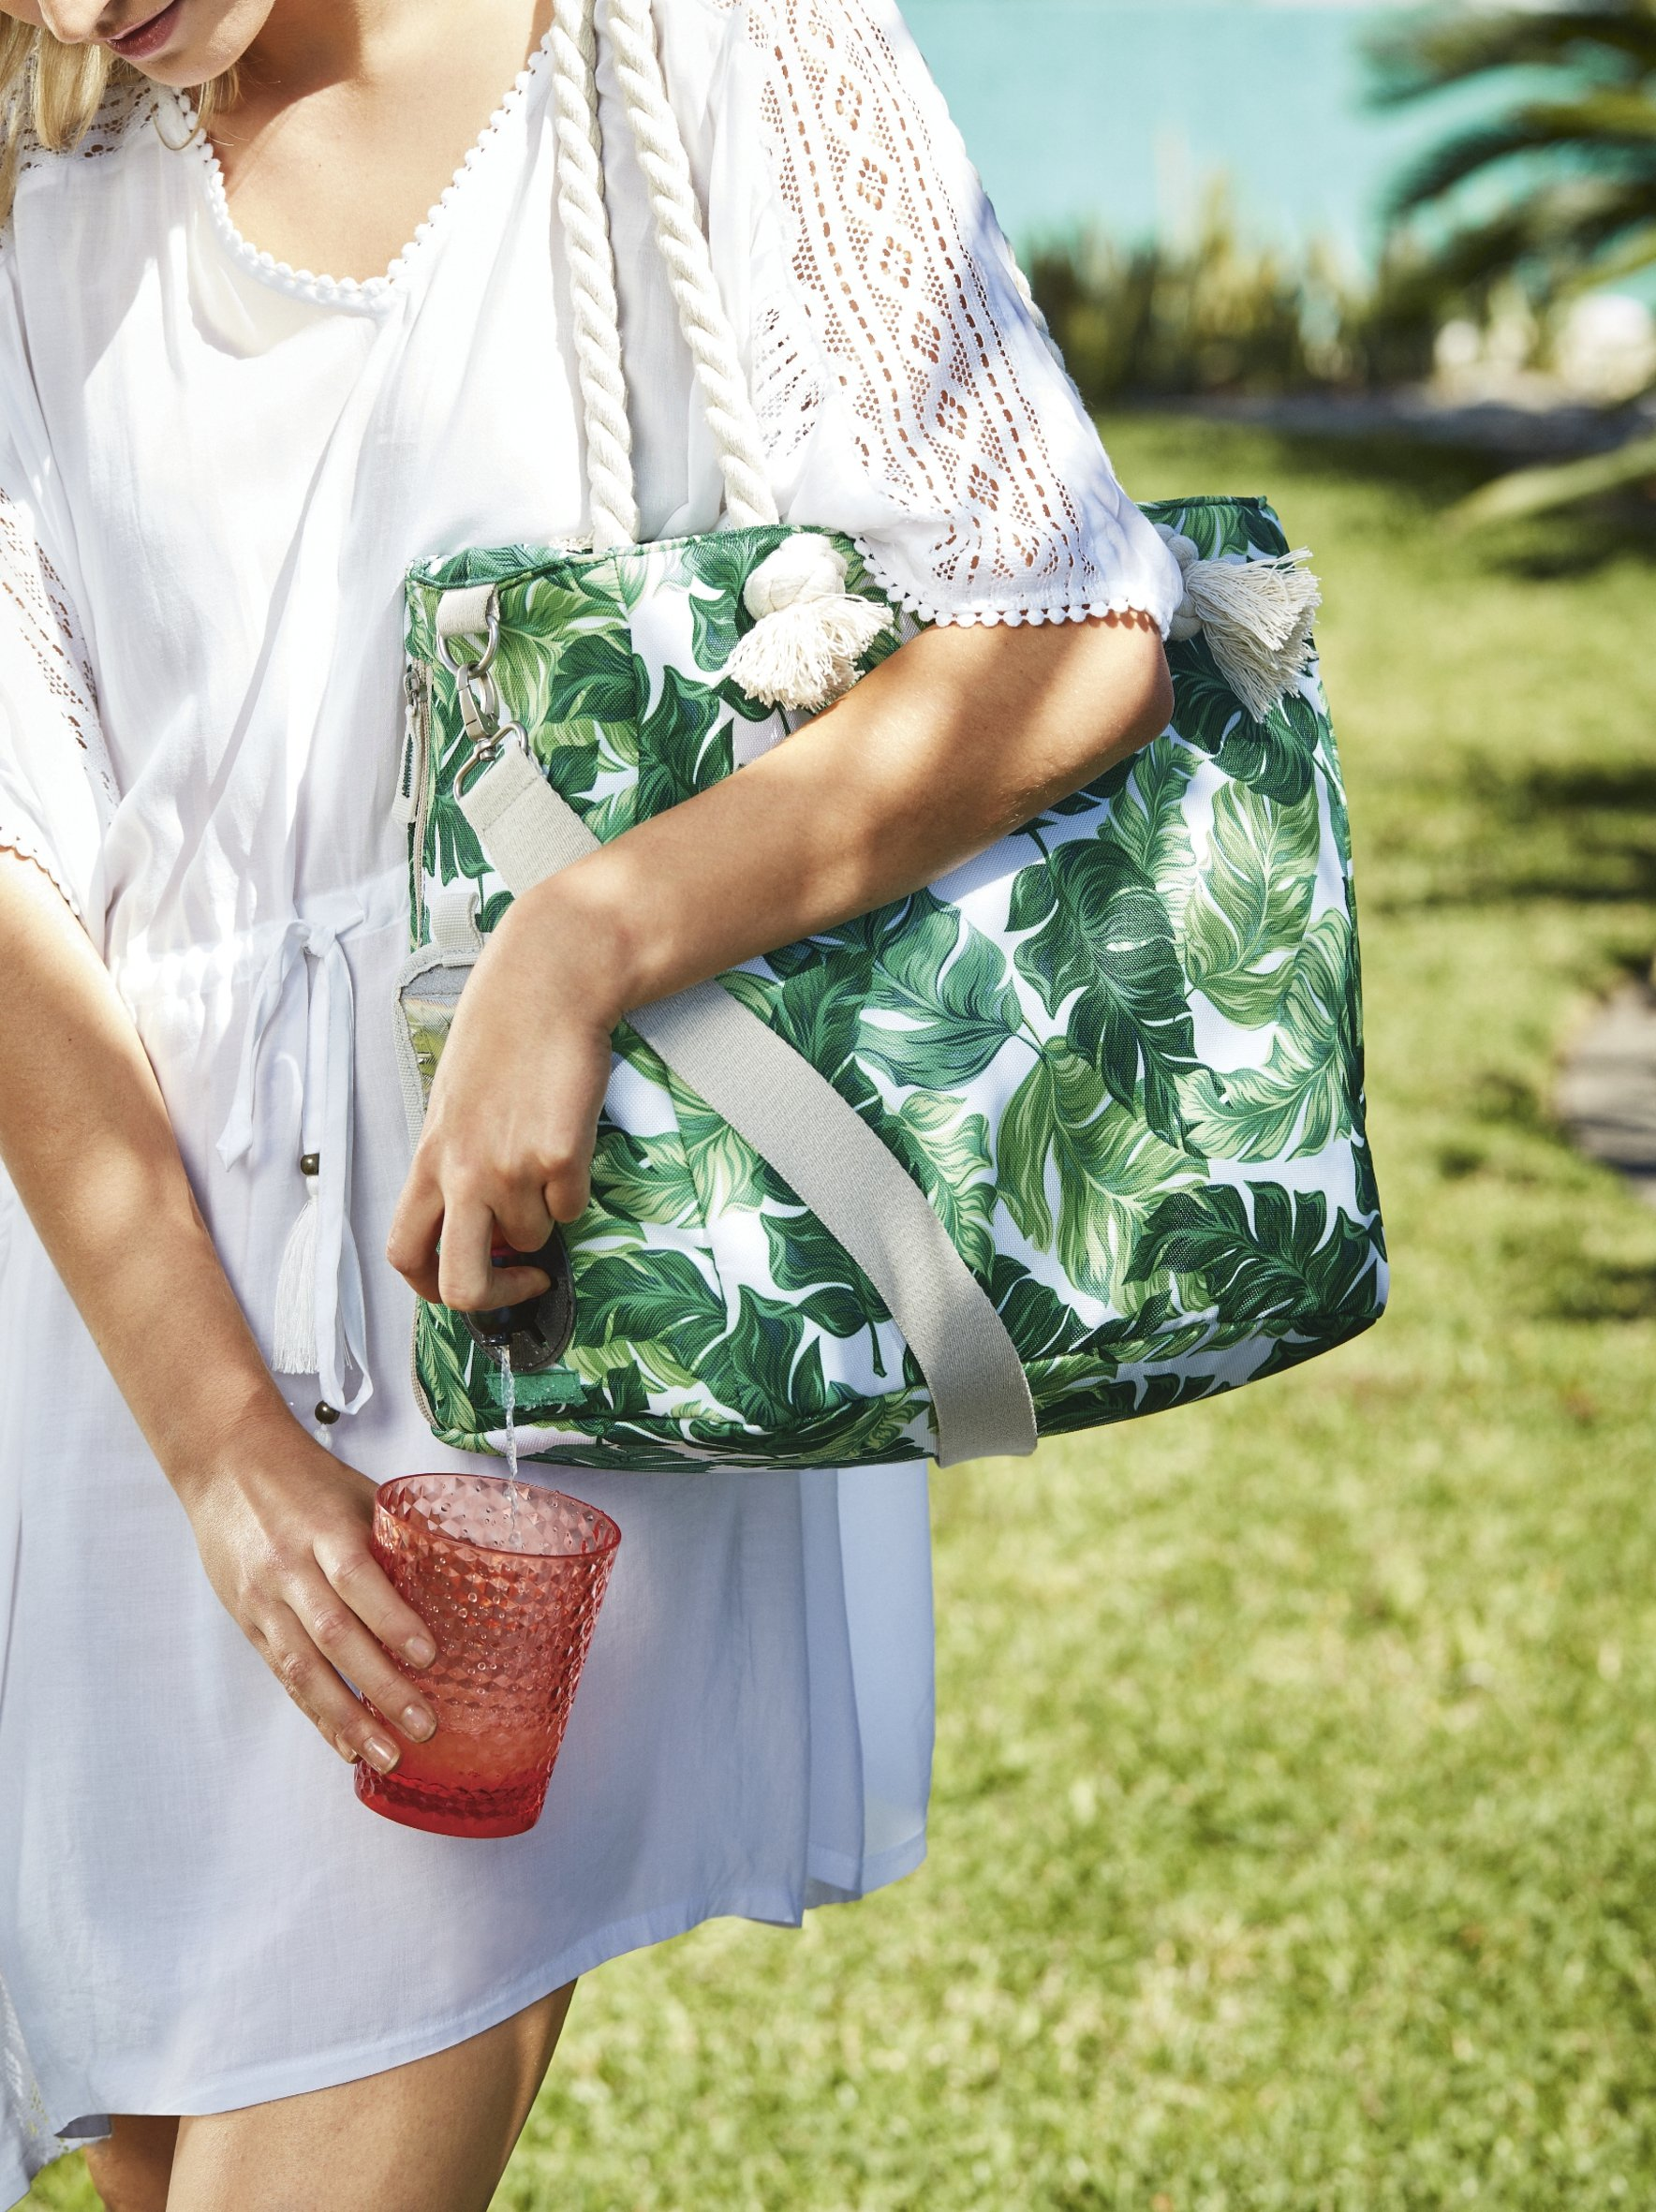 Drinksbag Coolbag  Winebag Take your Wine With you 1 Refreshment bag Included.